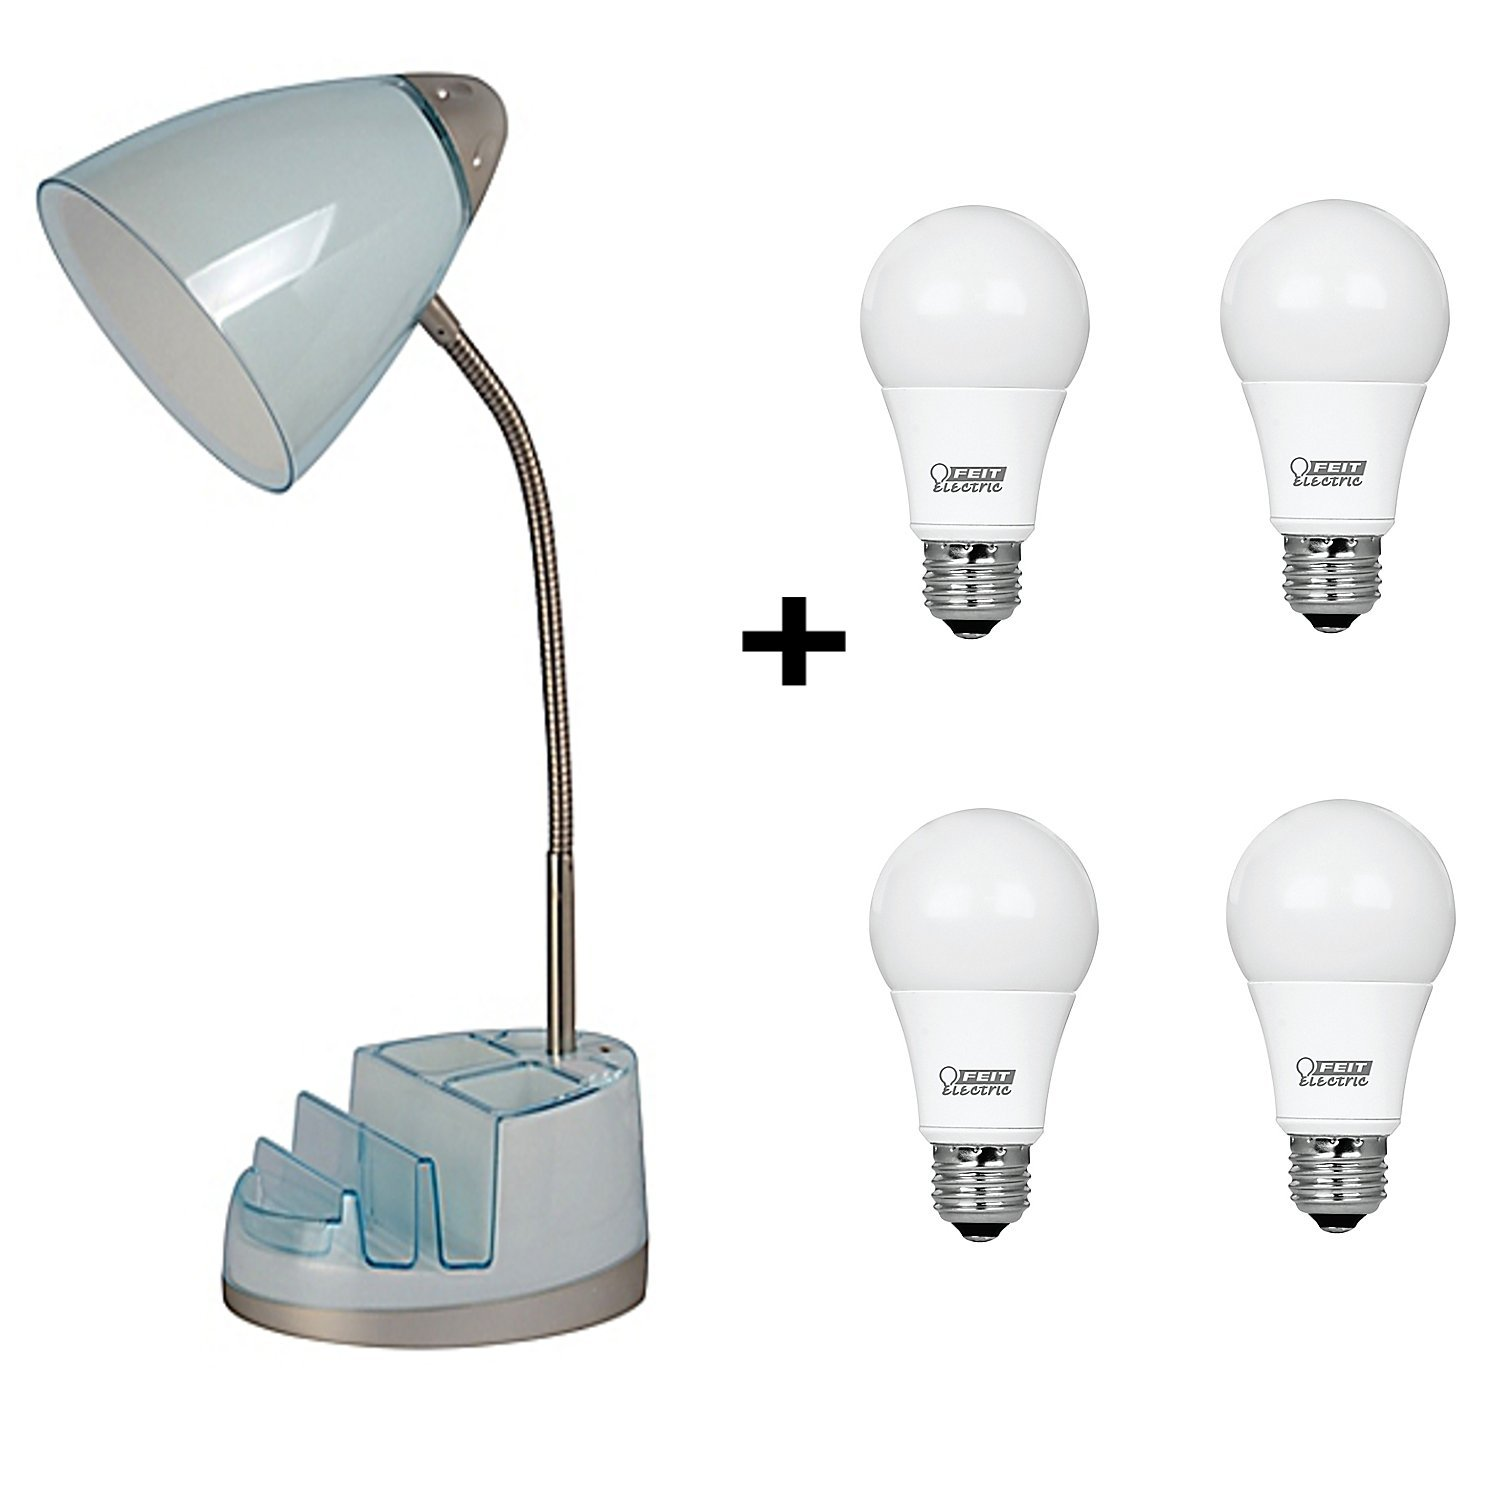 Desk Lamp with Tablet Organizer Outlet/USB with 4-Pack LED Daylight Light Bulbs (Spa)